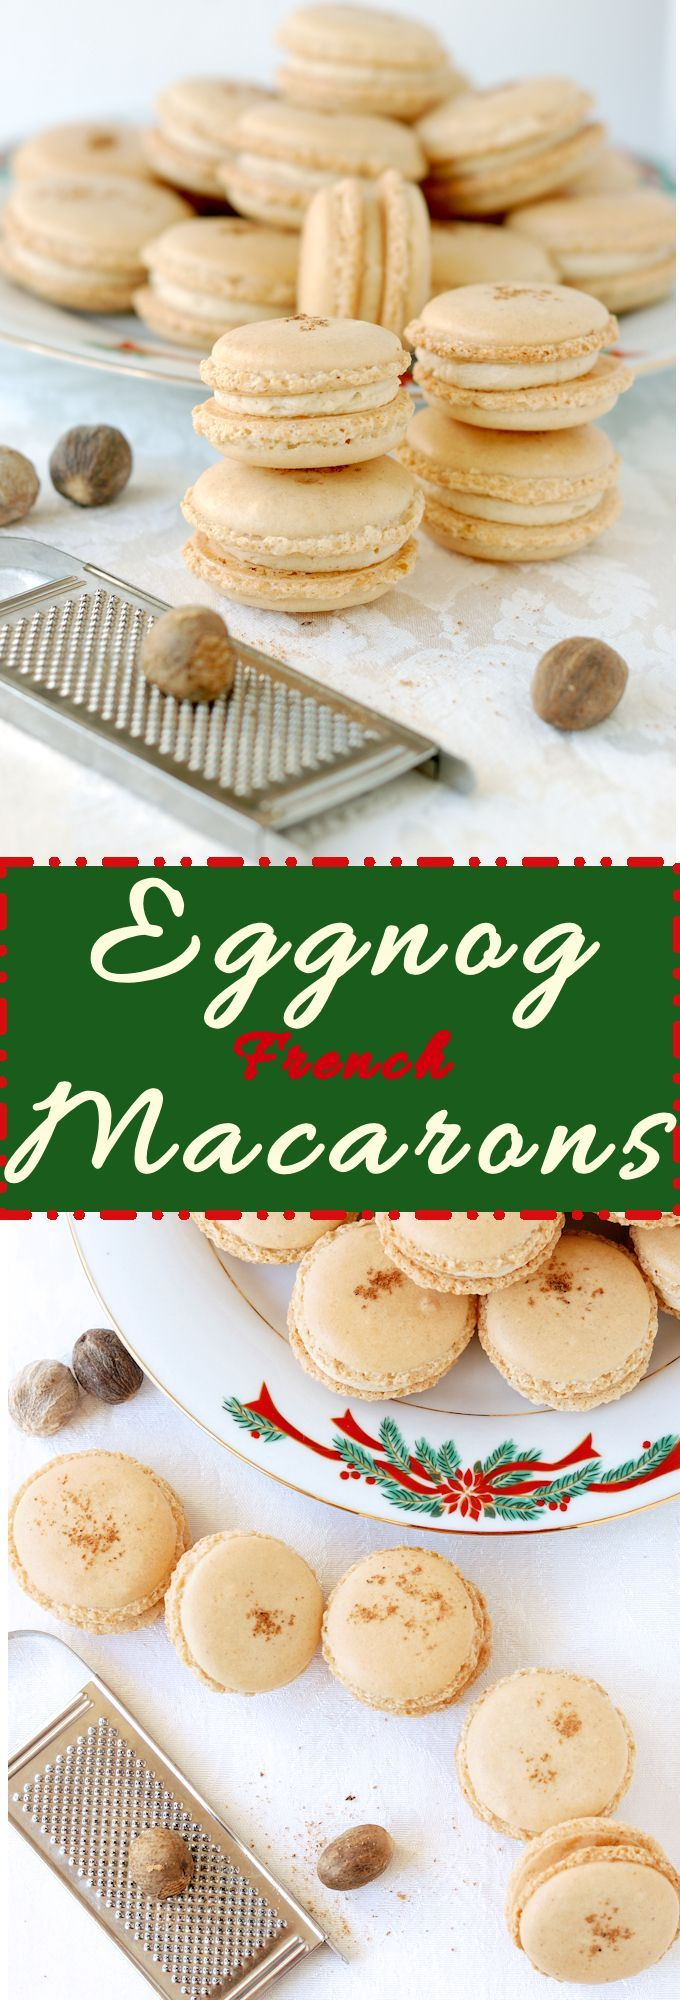 French Macarons are really something special. Make them for the holidays with delicious eggnog flavor. See a detailed slideshow showing the steps to macaron success. #SundaySupper